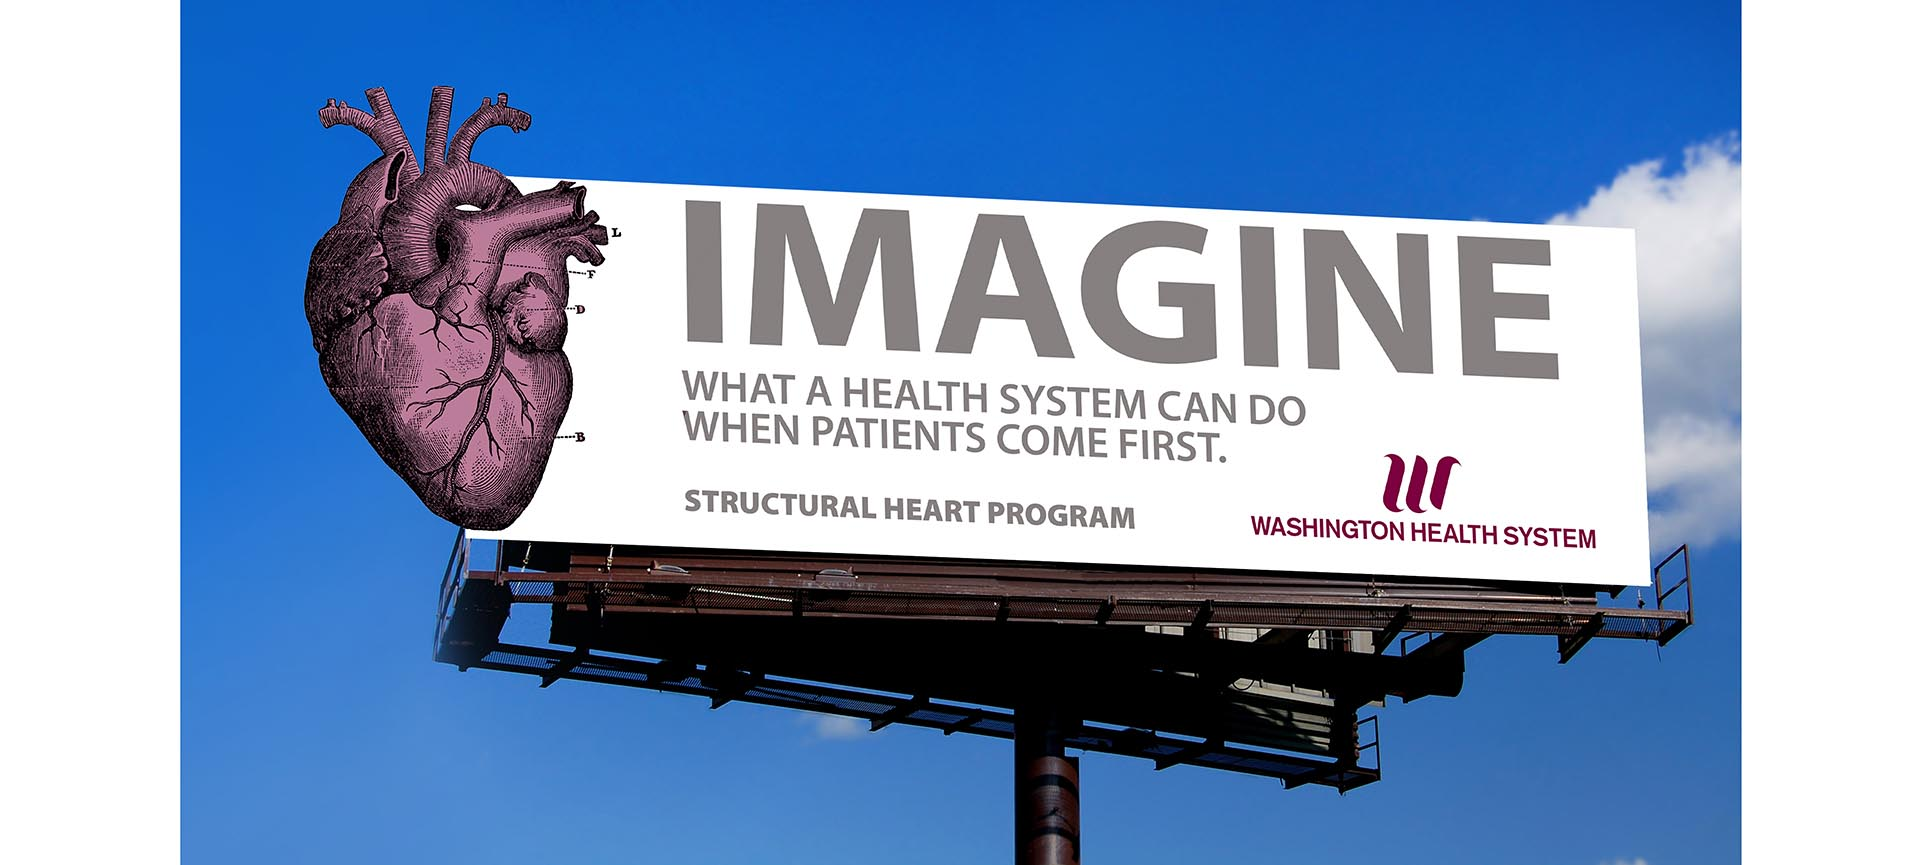 Washington Hospital Billboard